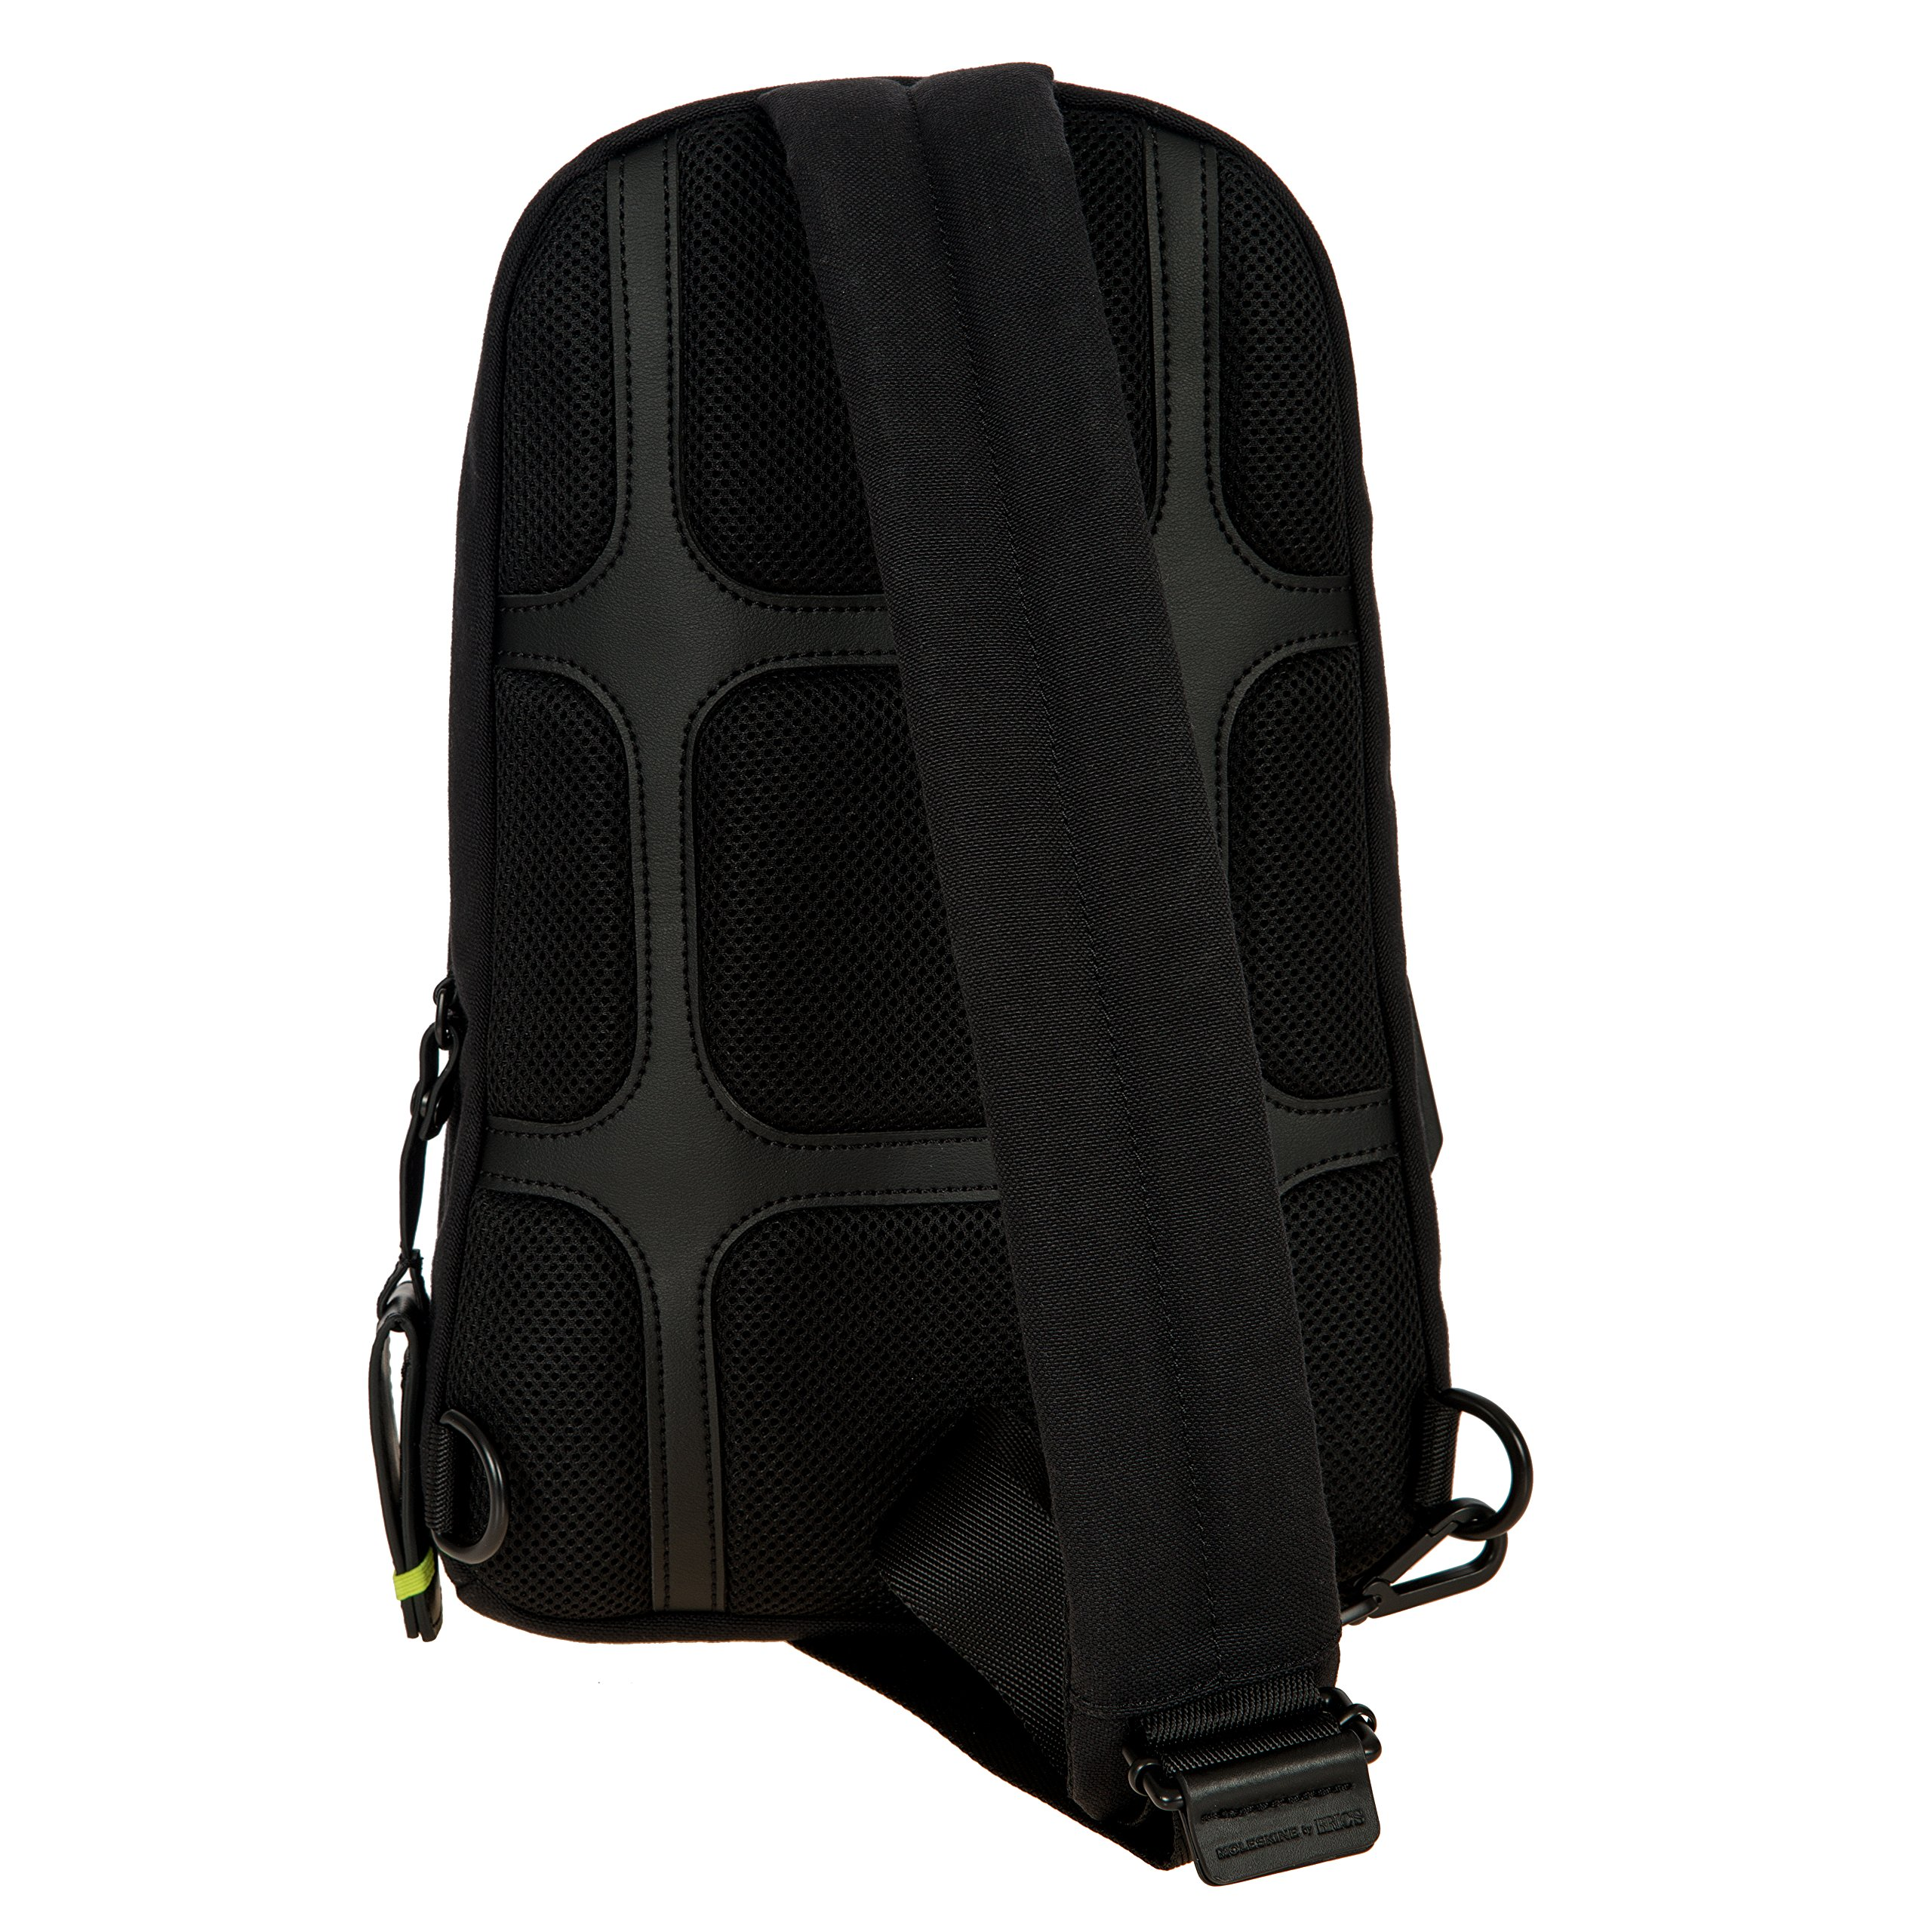 Bric's Men's Moleskine Bag Sling Backpack, Black, One Size by Bric's (Image #4)